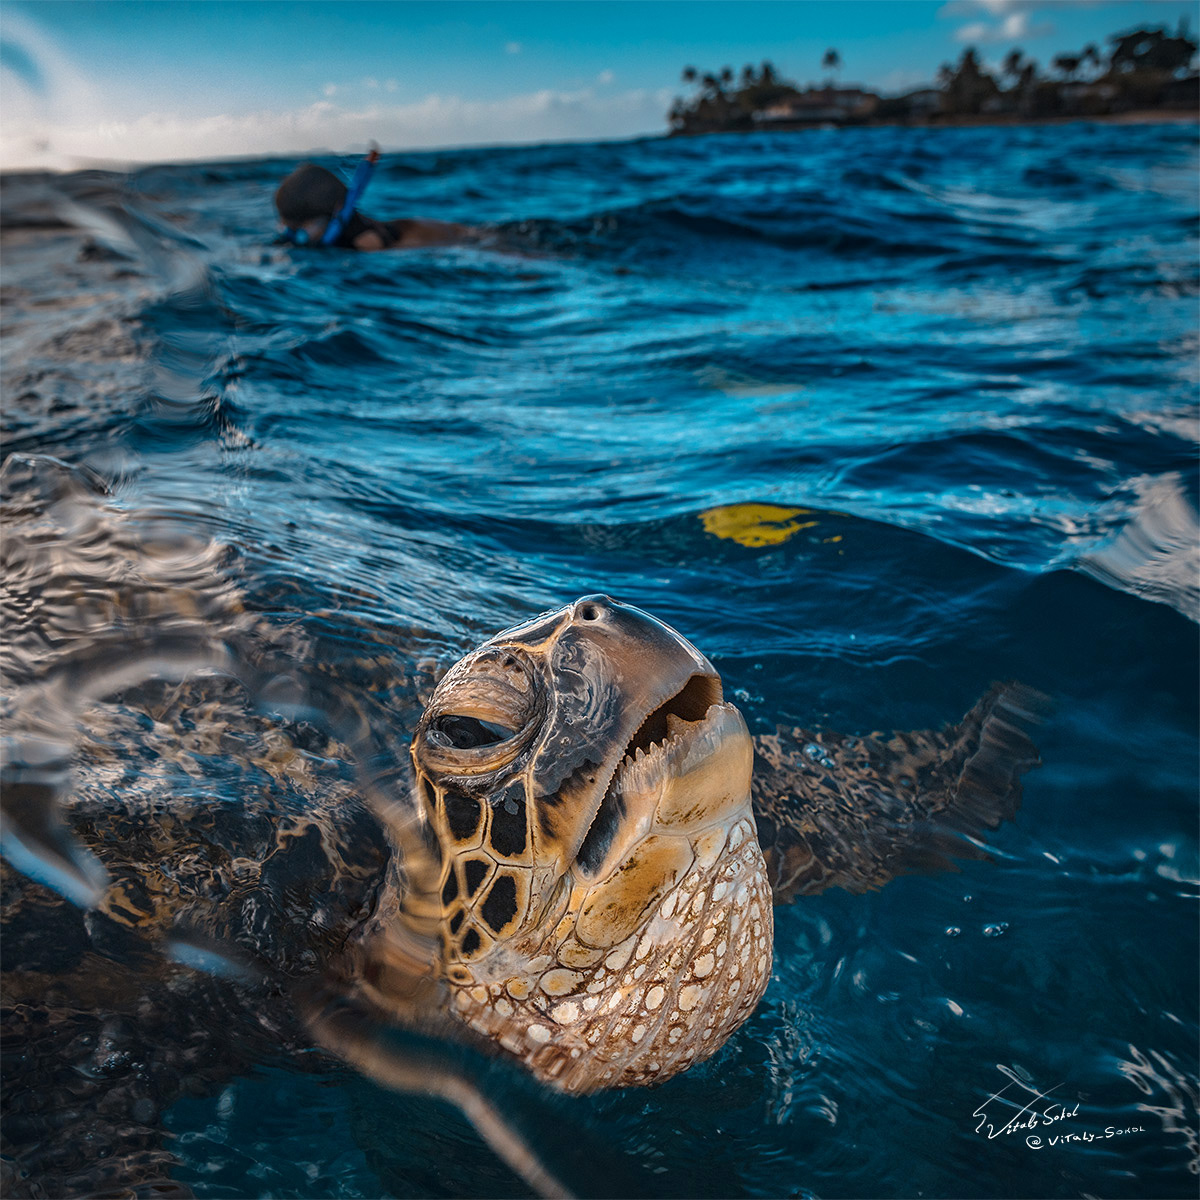 Turtle at water surface